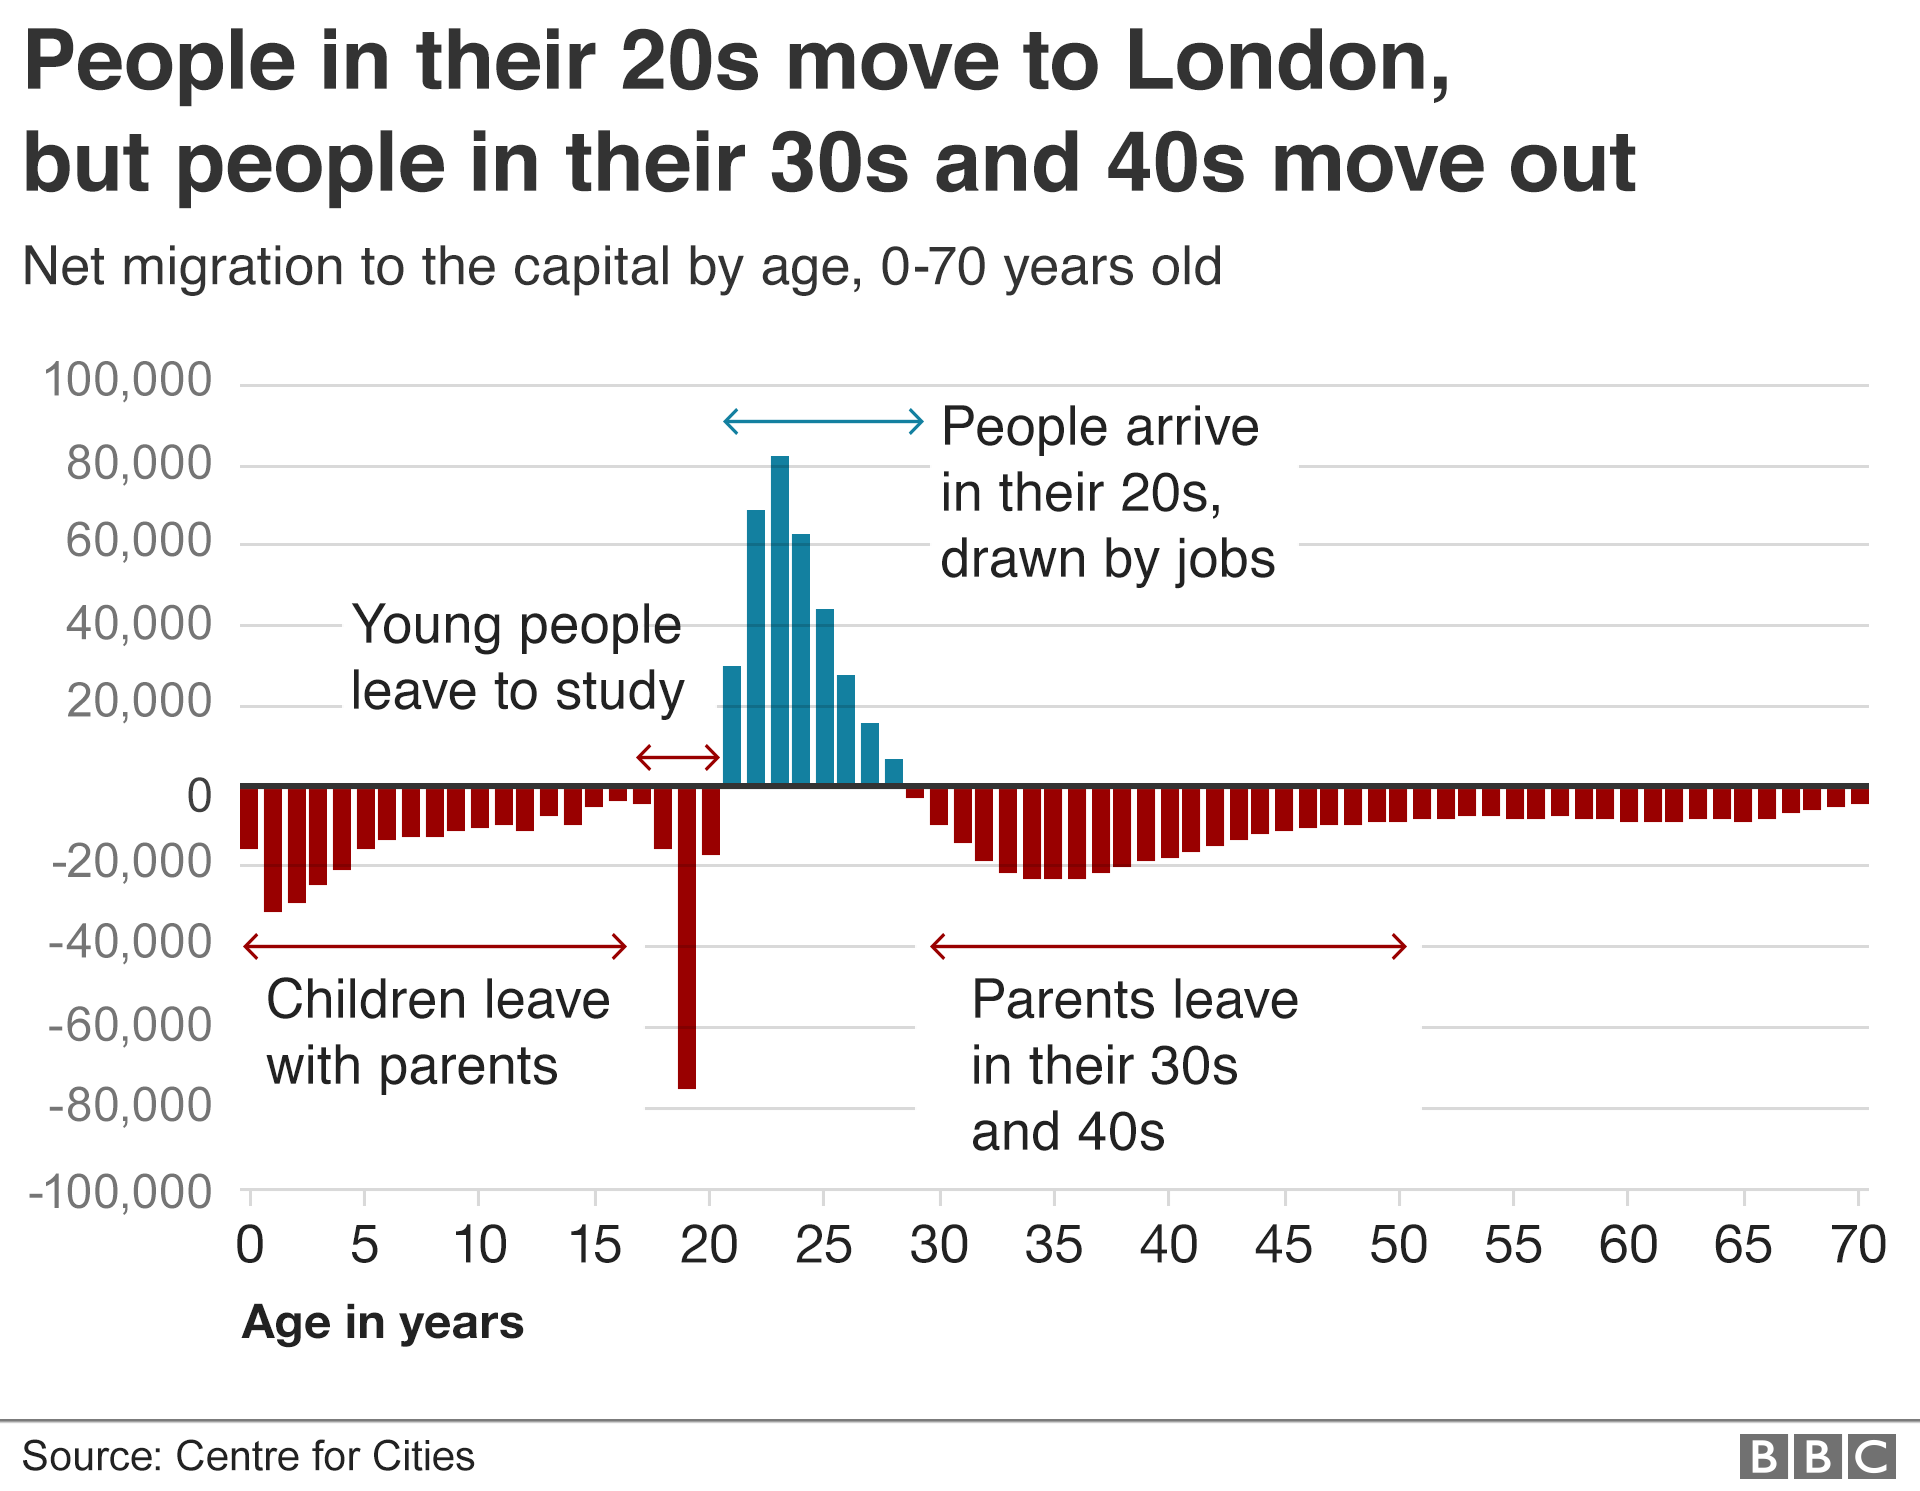 Net migration to and from London by age